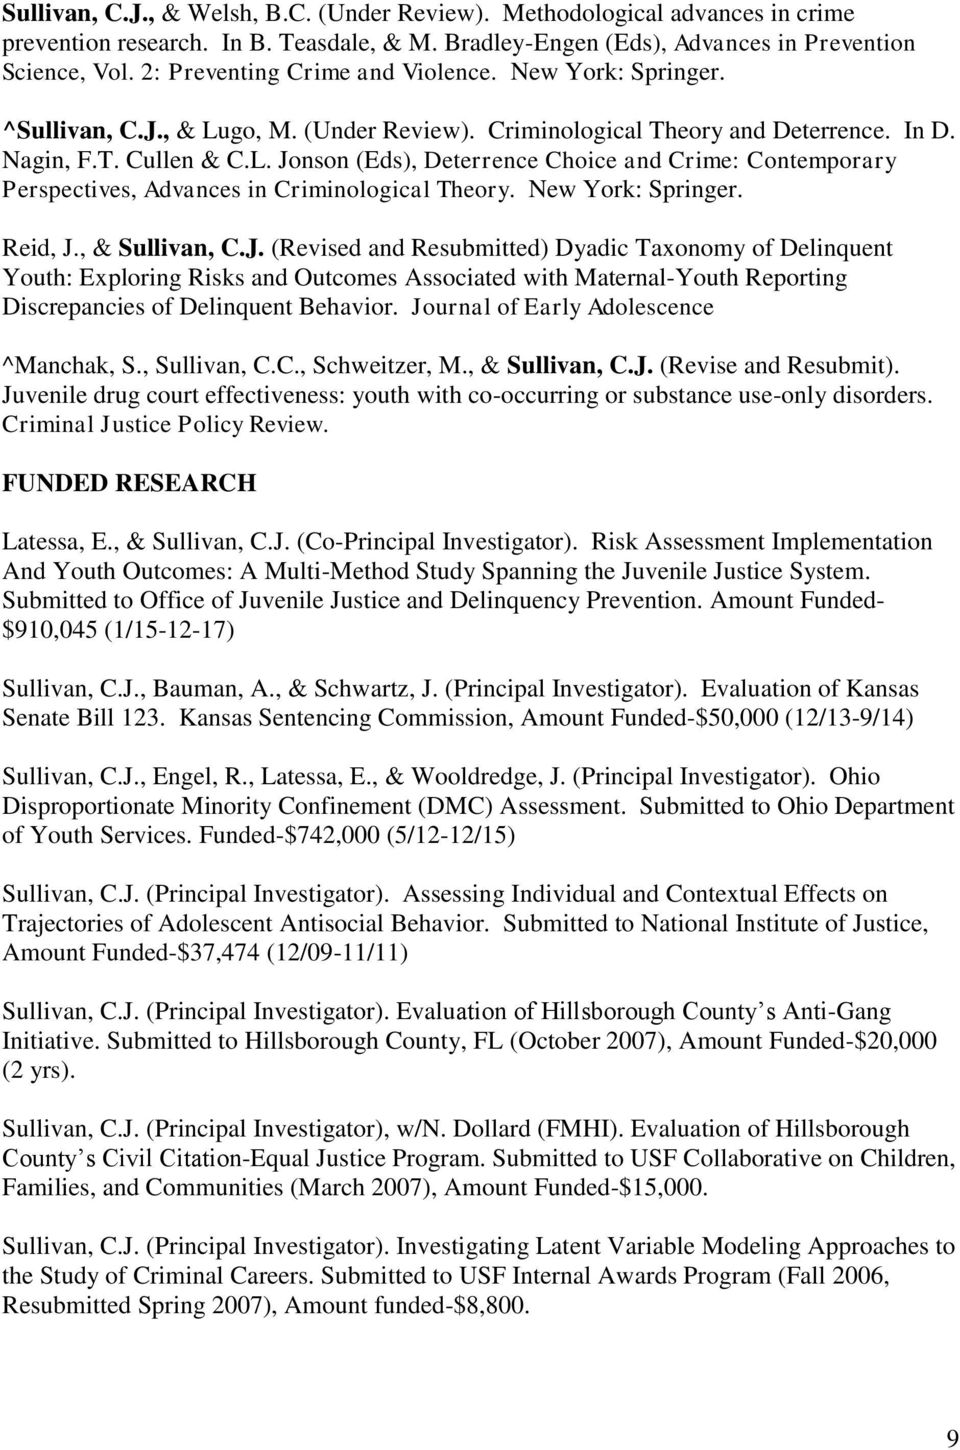 New York: Springer. Reid, J., & Sullivan, C.J. (Revised and Resubmitted) Dyadic Taxonomy of Delinquent Youth: Exploring Risks and Outcomes Associated with Maternal-Youth Reporting Discrepancies of Delinquent Behavior.